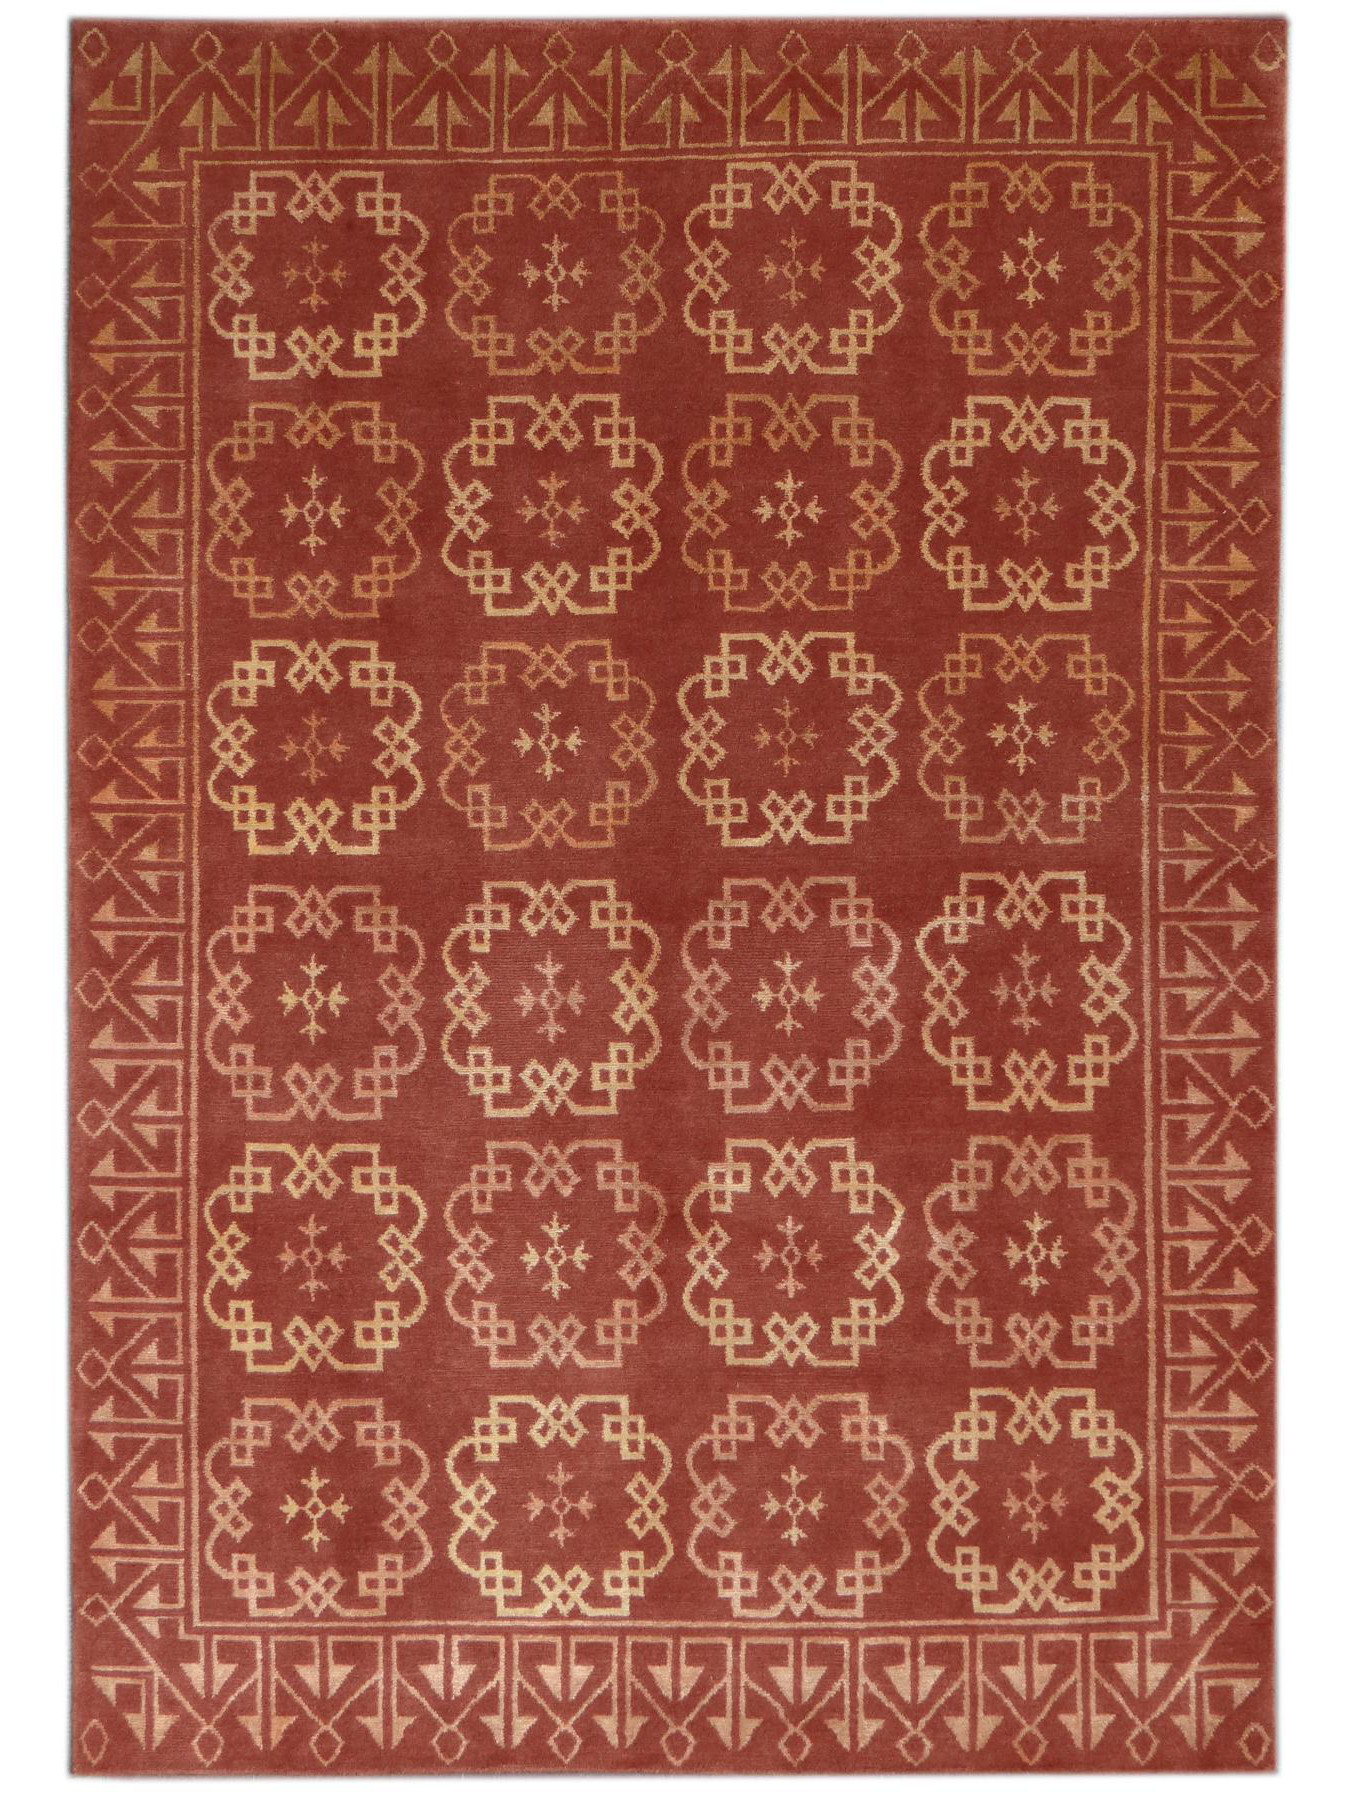 Tapis design - OPUS 06 - BB2230